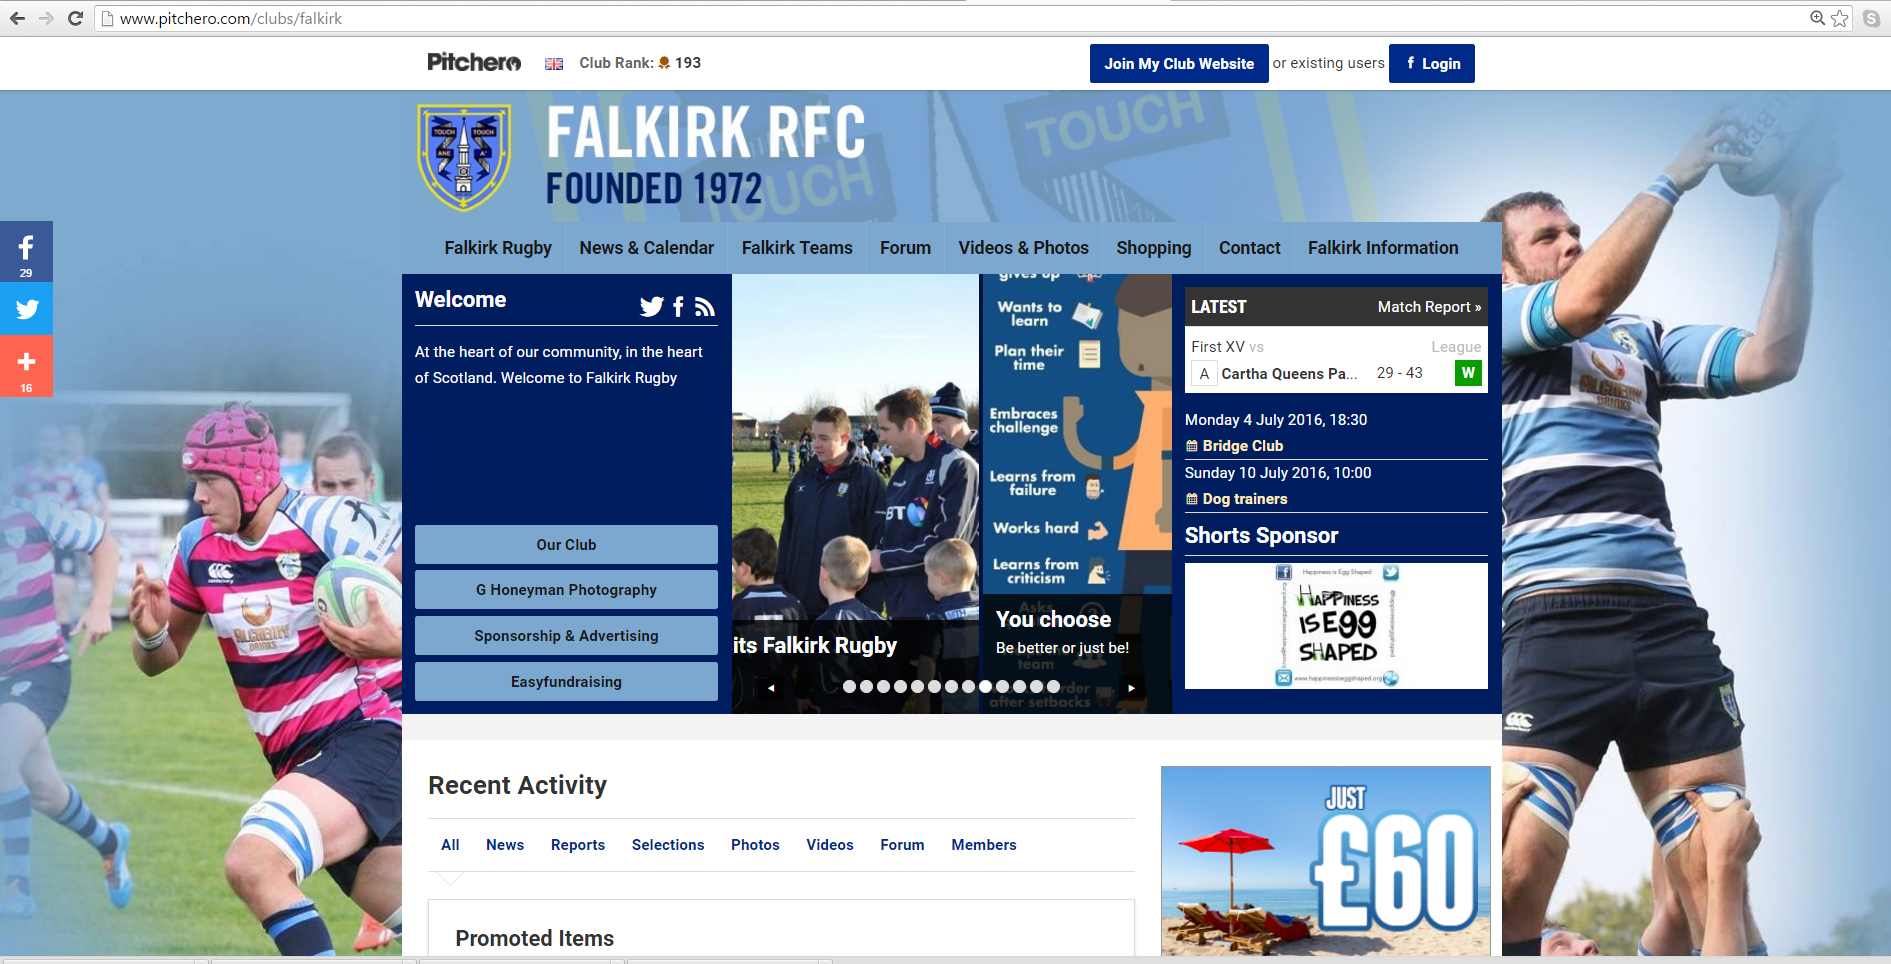 Falkirk RFC website